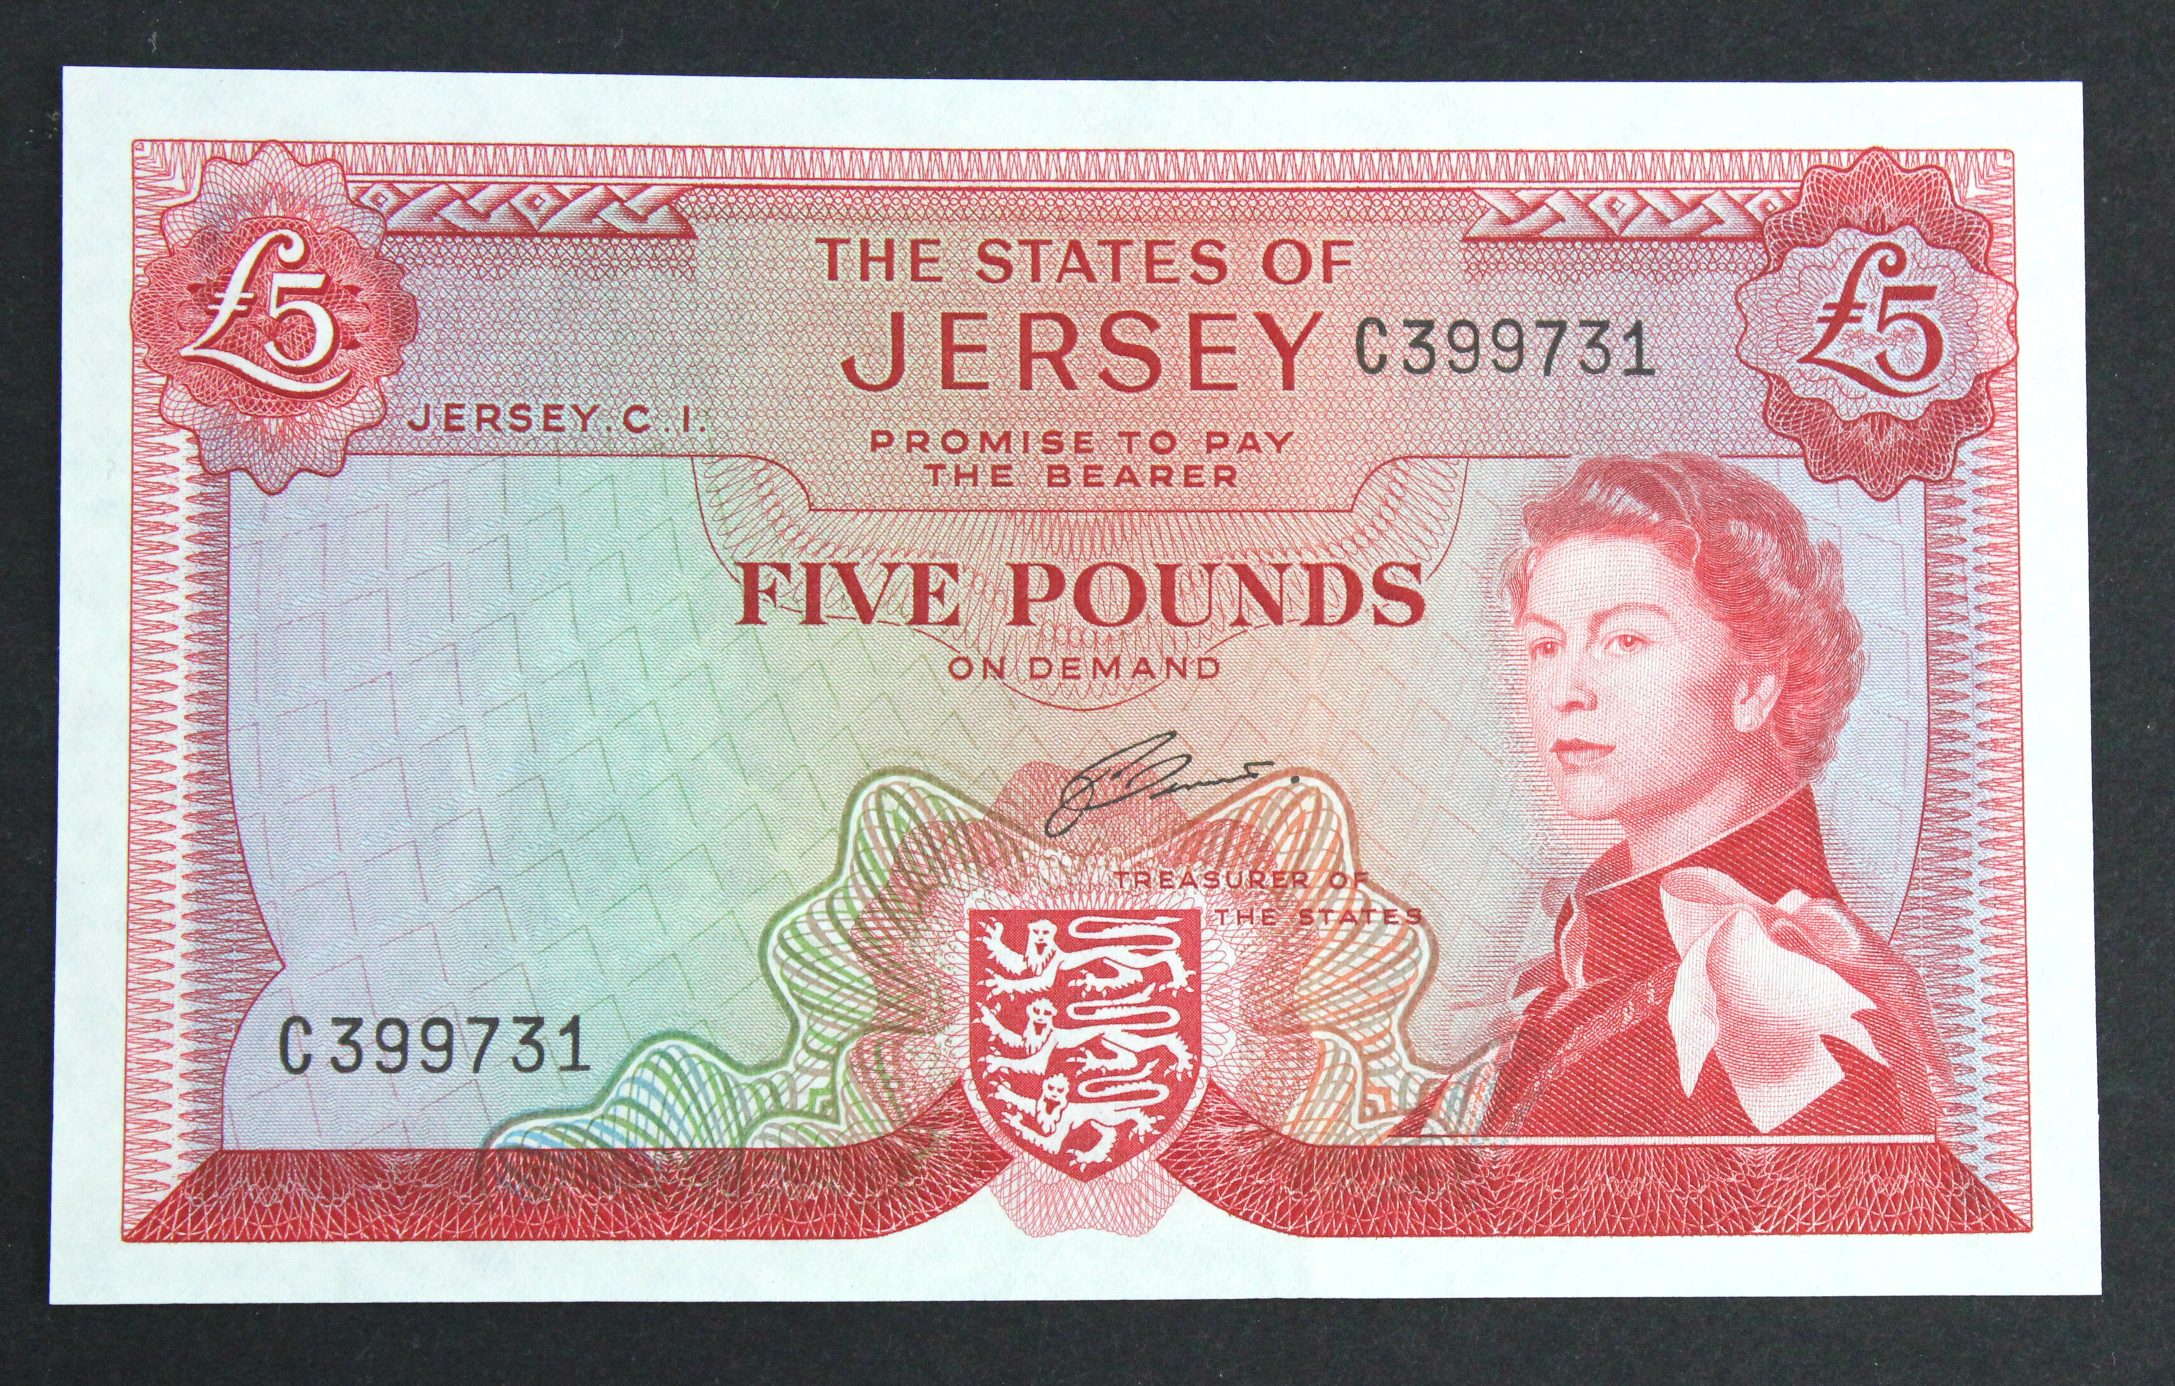 Jersey 5 Pounds issued 1963 signed J. Clennett, serial C399731 (TBB B109b, Pick9b) Uncirculated